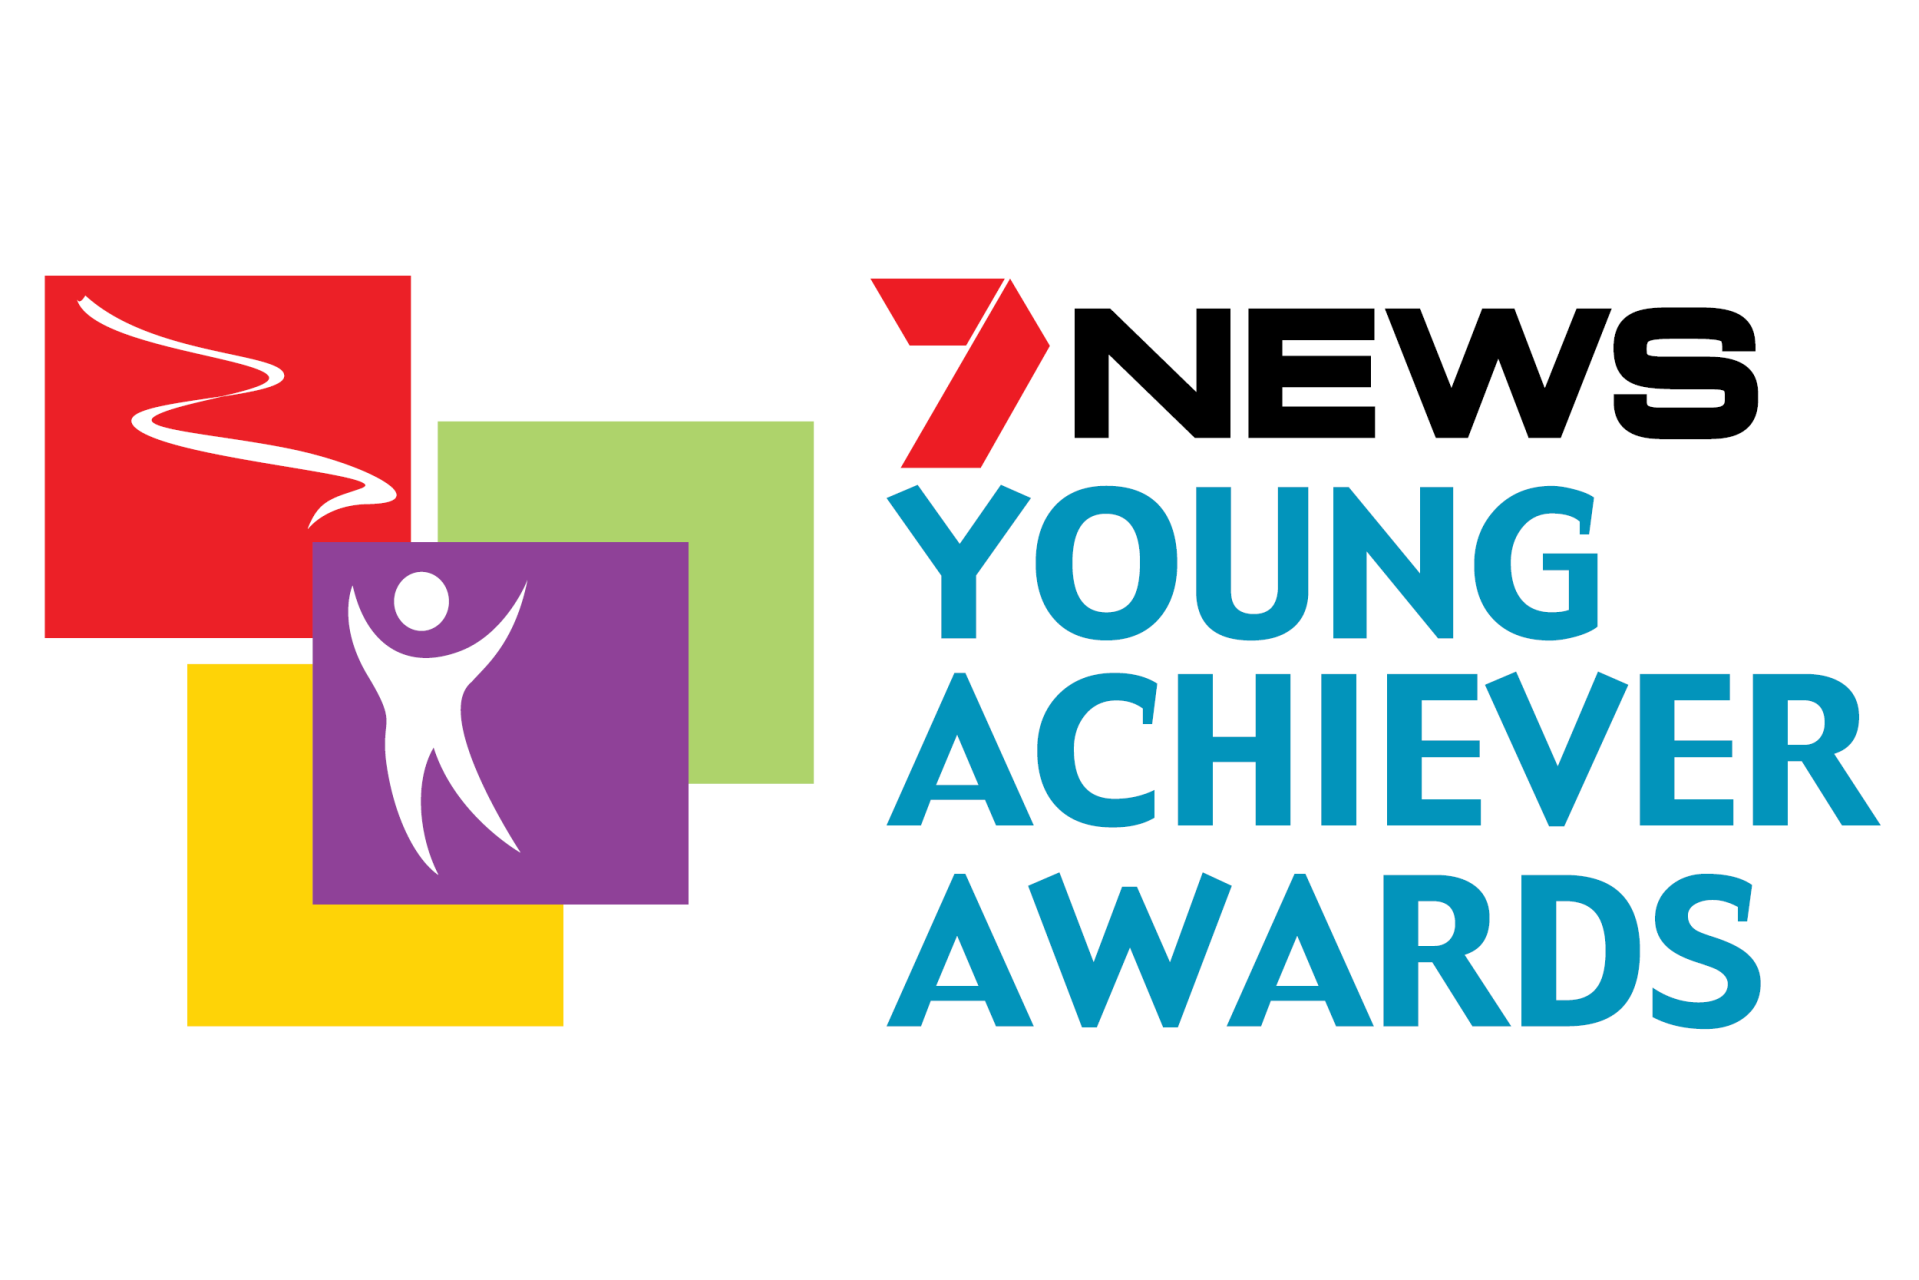 7 NEWS Young Achiever Awards